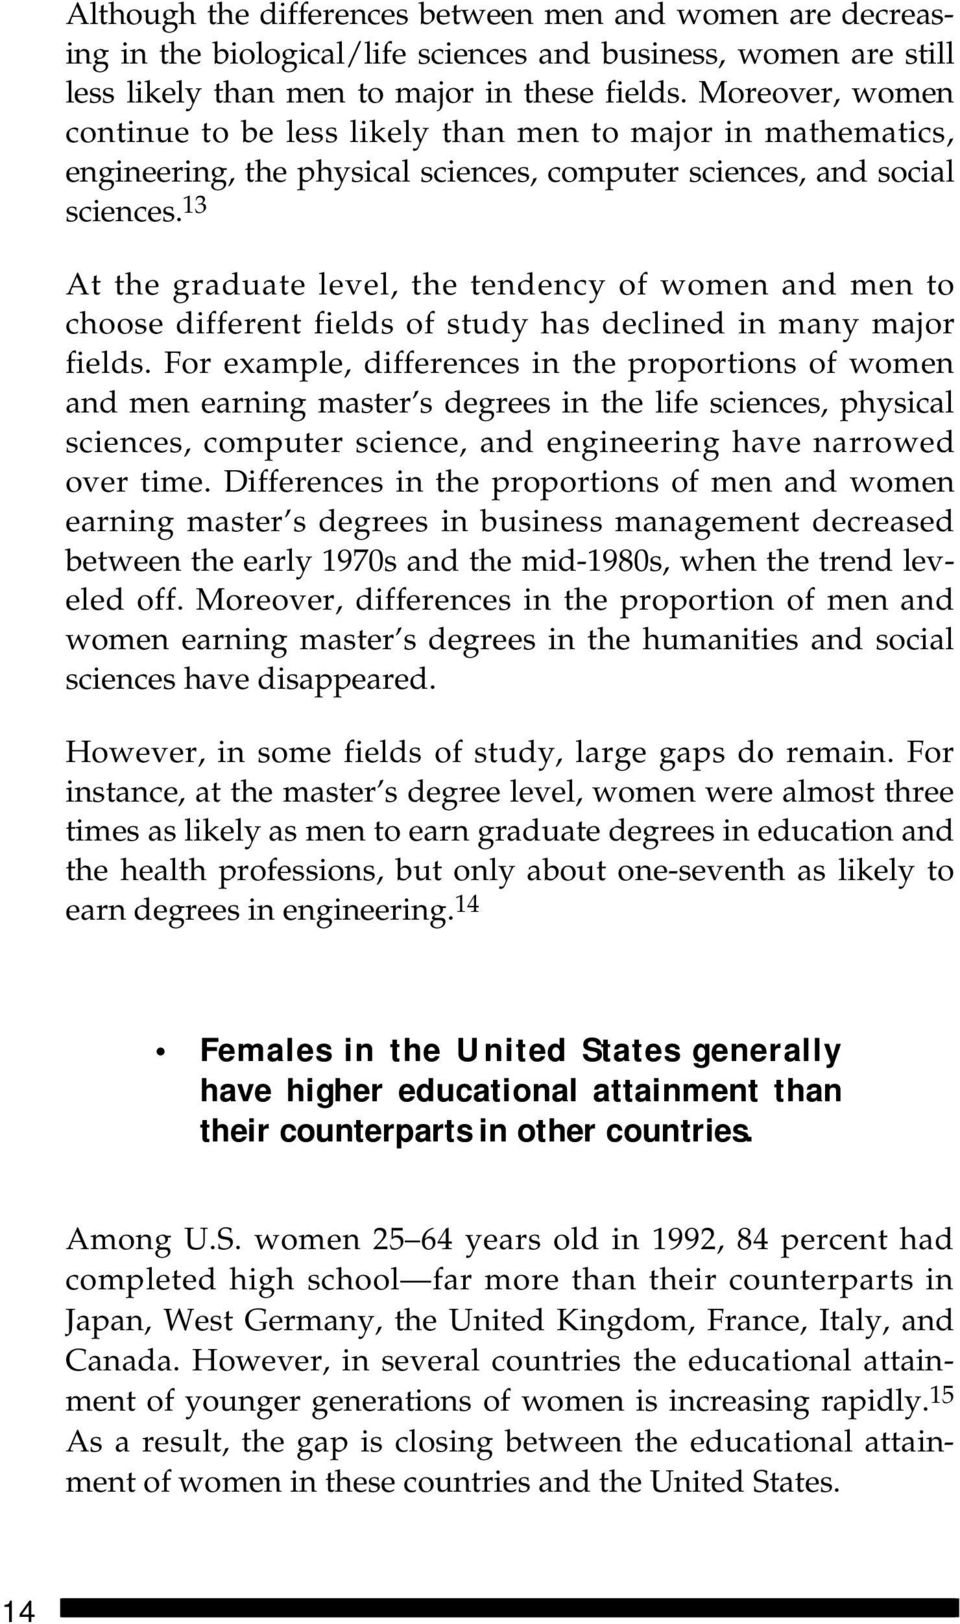 13 At the graduate level, the tendency of women and men to choose different fields of study has declined in many major fields.